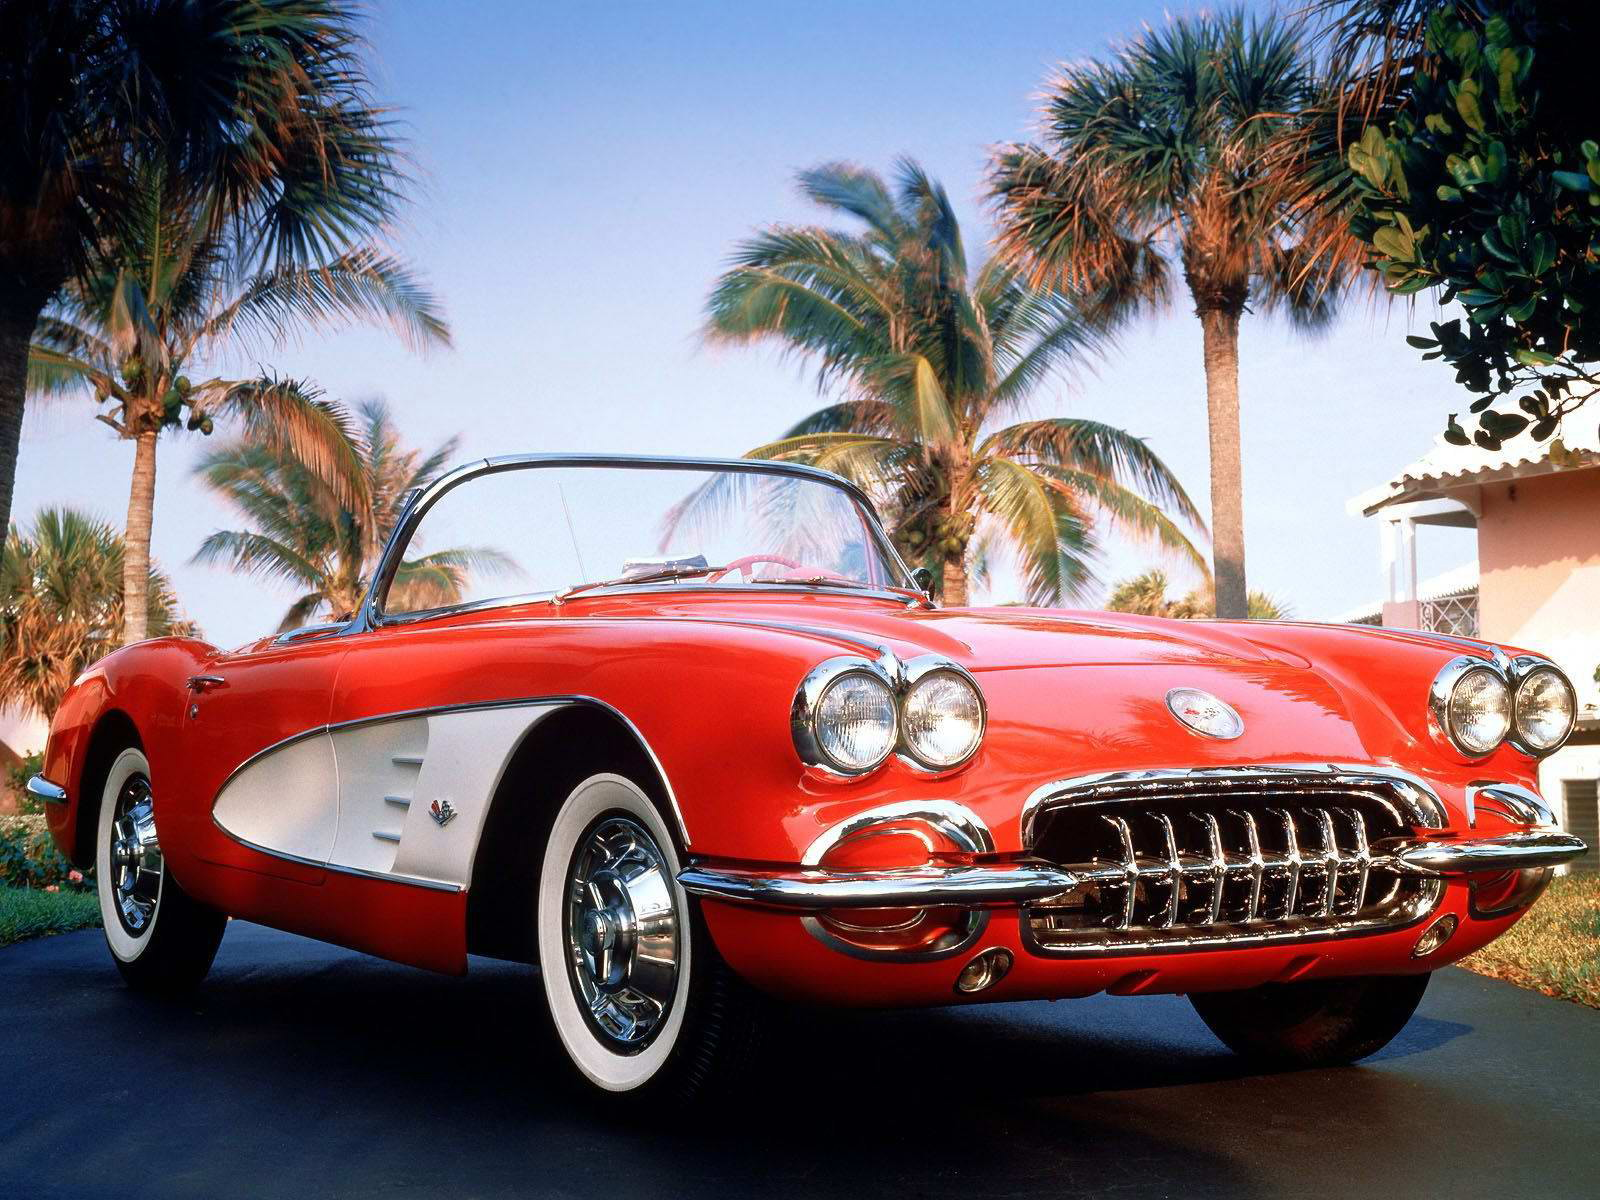 Car Model Logos And Names >> Chevrolet Corvette C1 photos - PhotoGallery with 5 pics| CarsBase.com